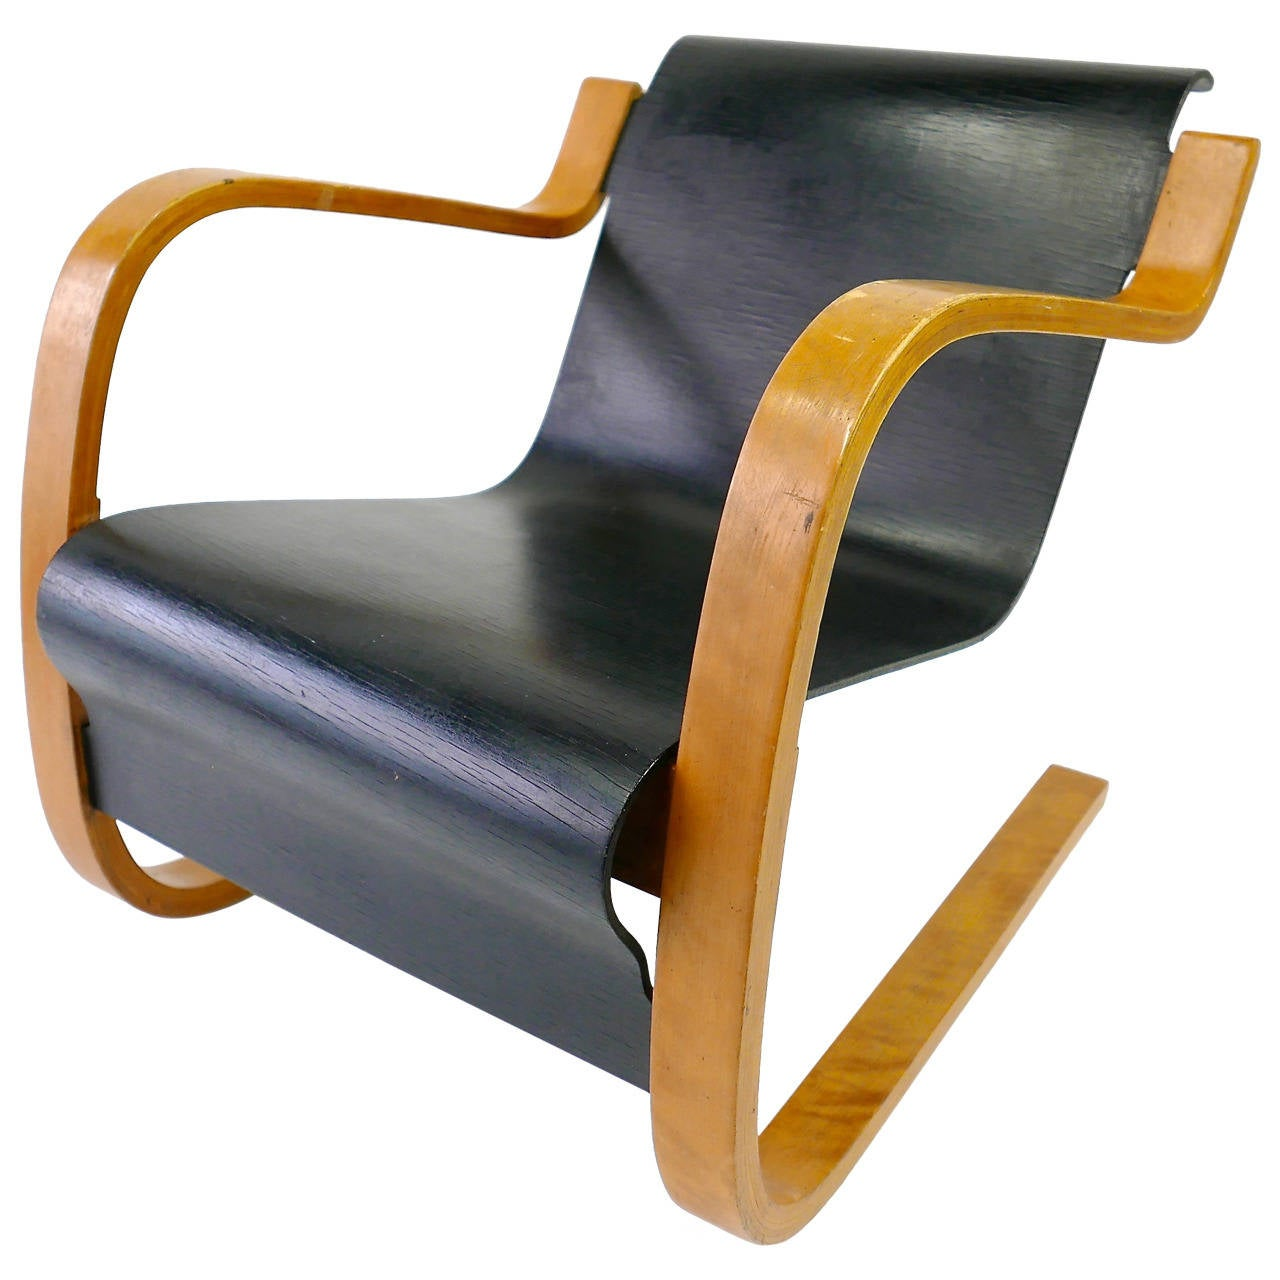 Alvar aalto cantilever lounge chair model 31 42 at 1stdibs for Alvar aalto chaise